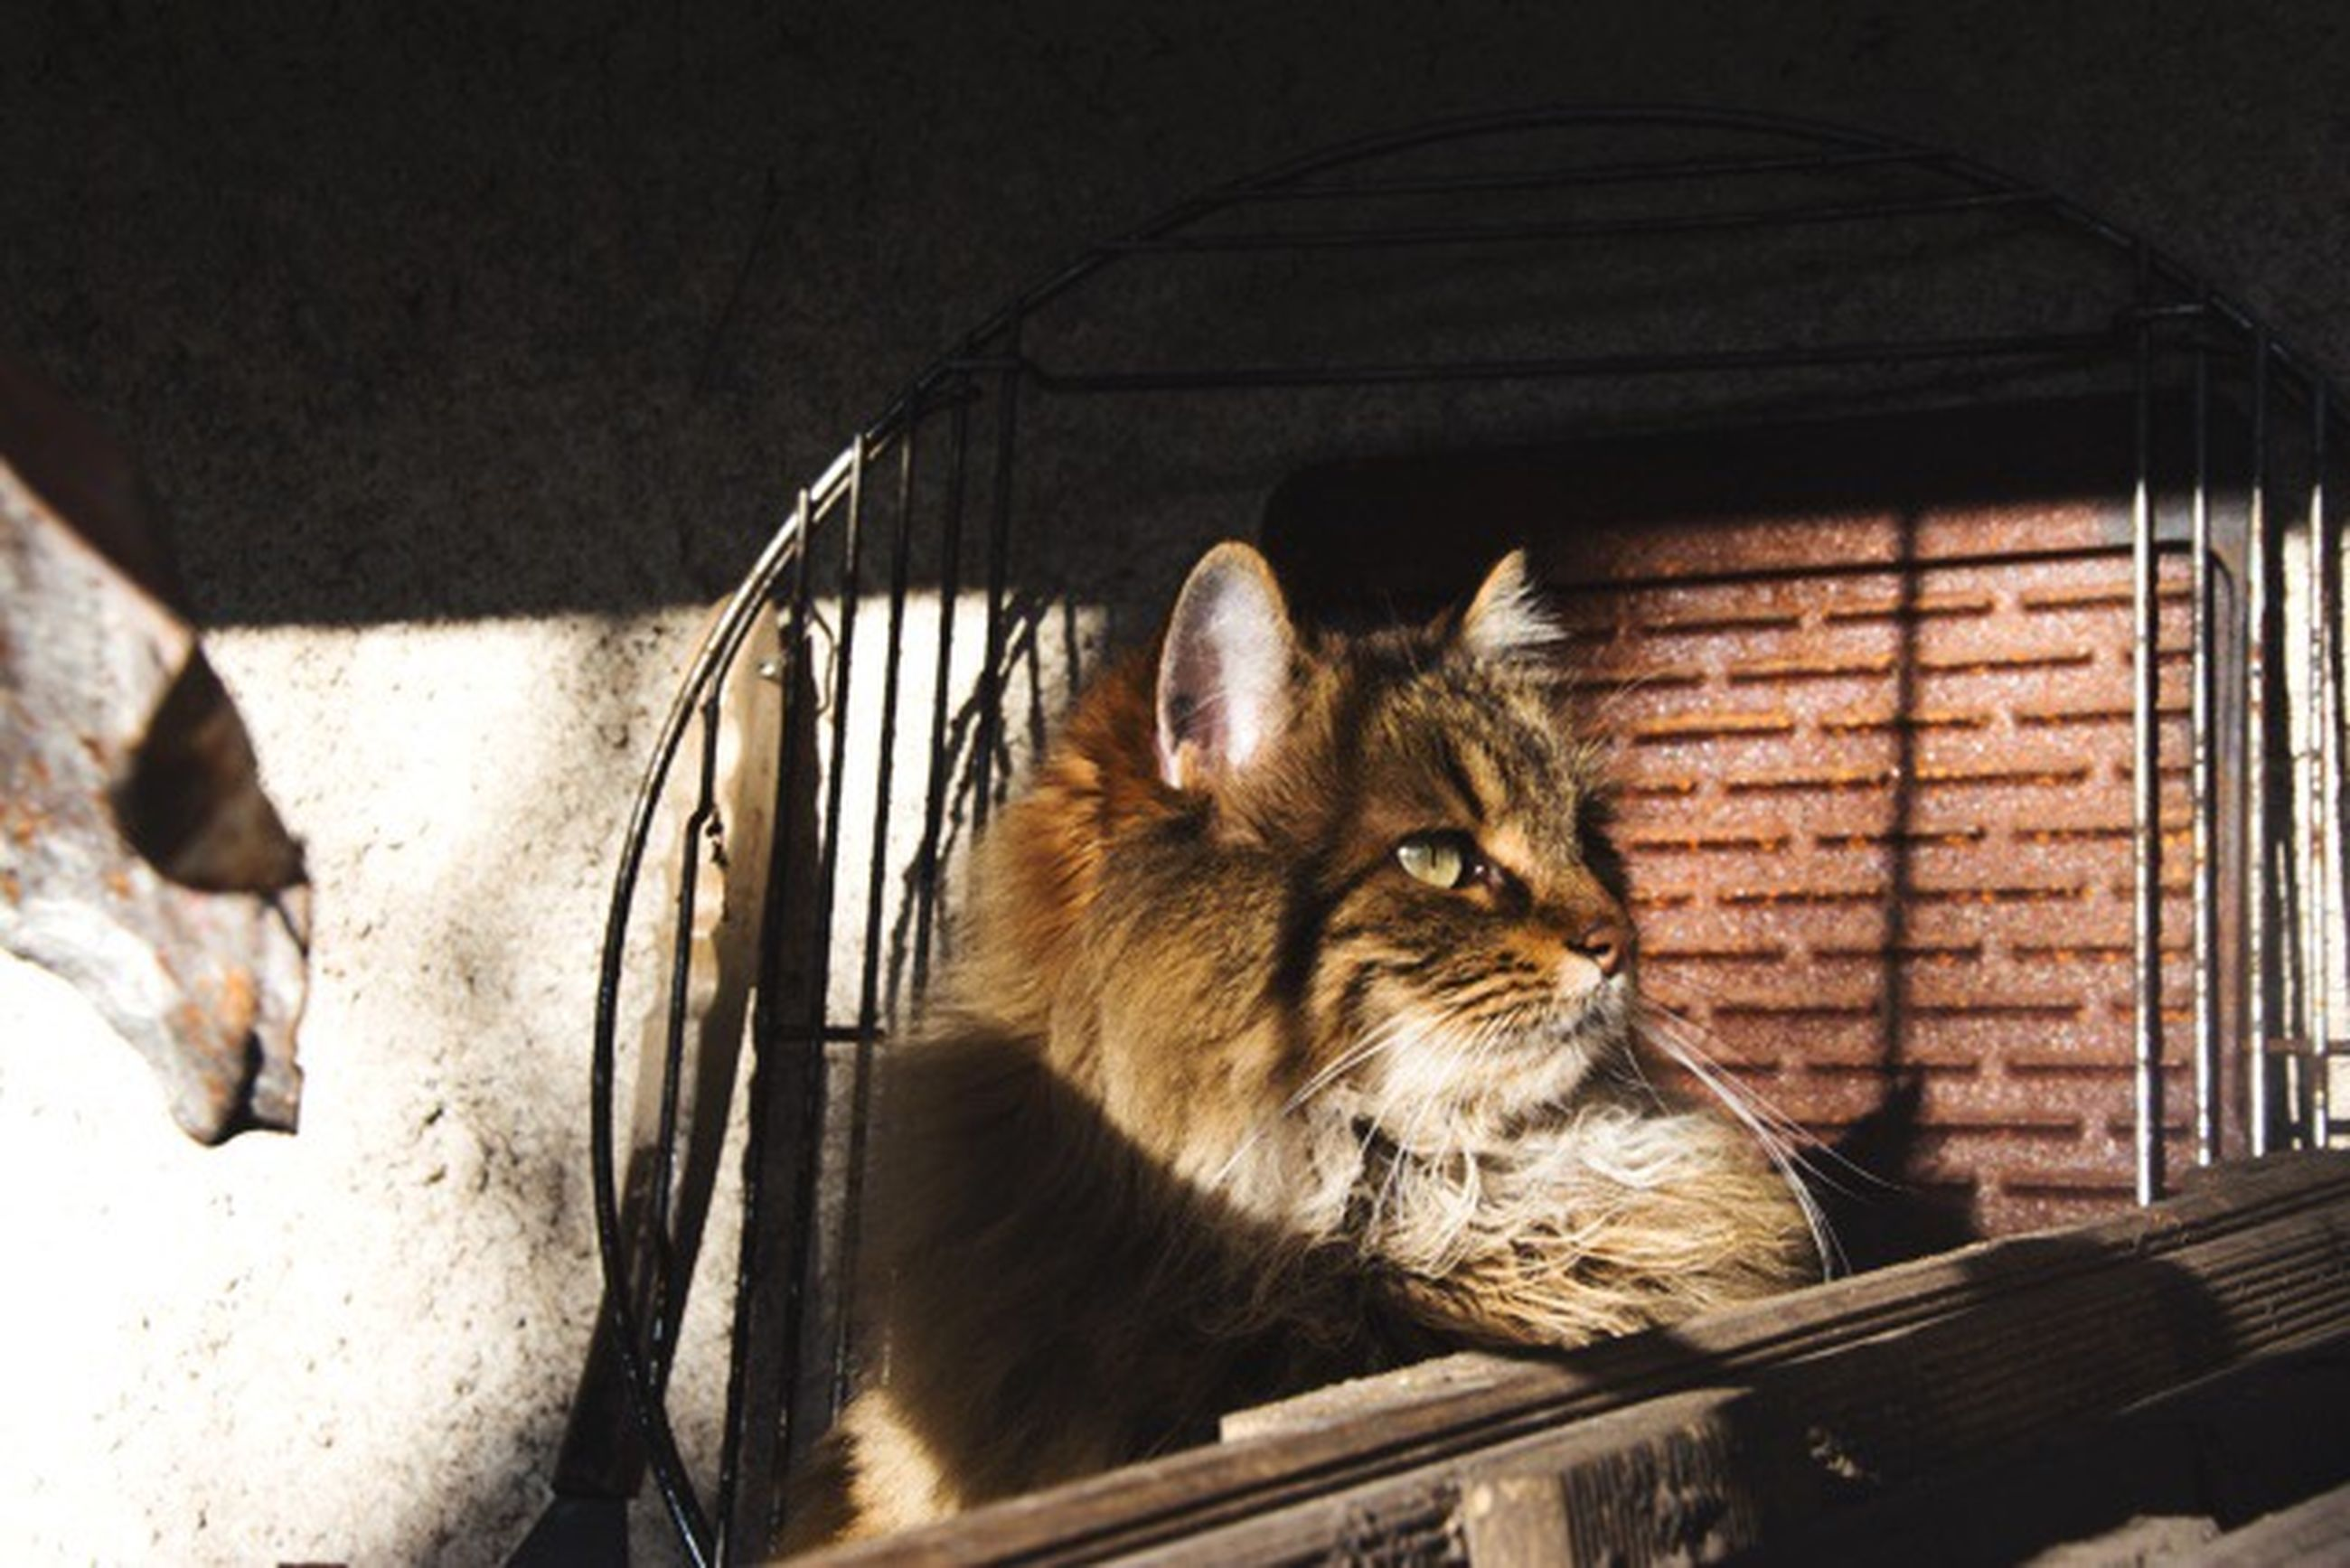 animal themes, one animal, domestic animals, pets, mammal, domestic cat, indoors, cat, feline, sitting, zoology, window, railing, no people, whisker, full length, vertebrate, sunlight, close-up, side view